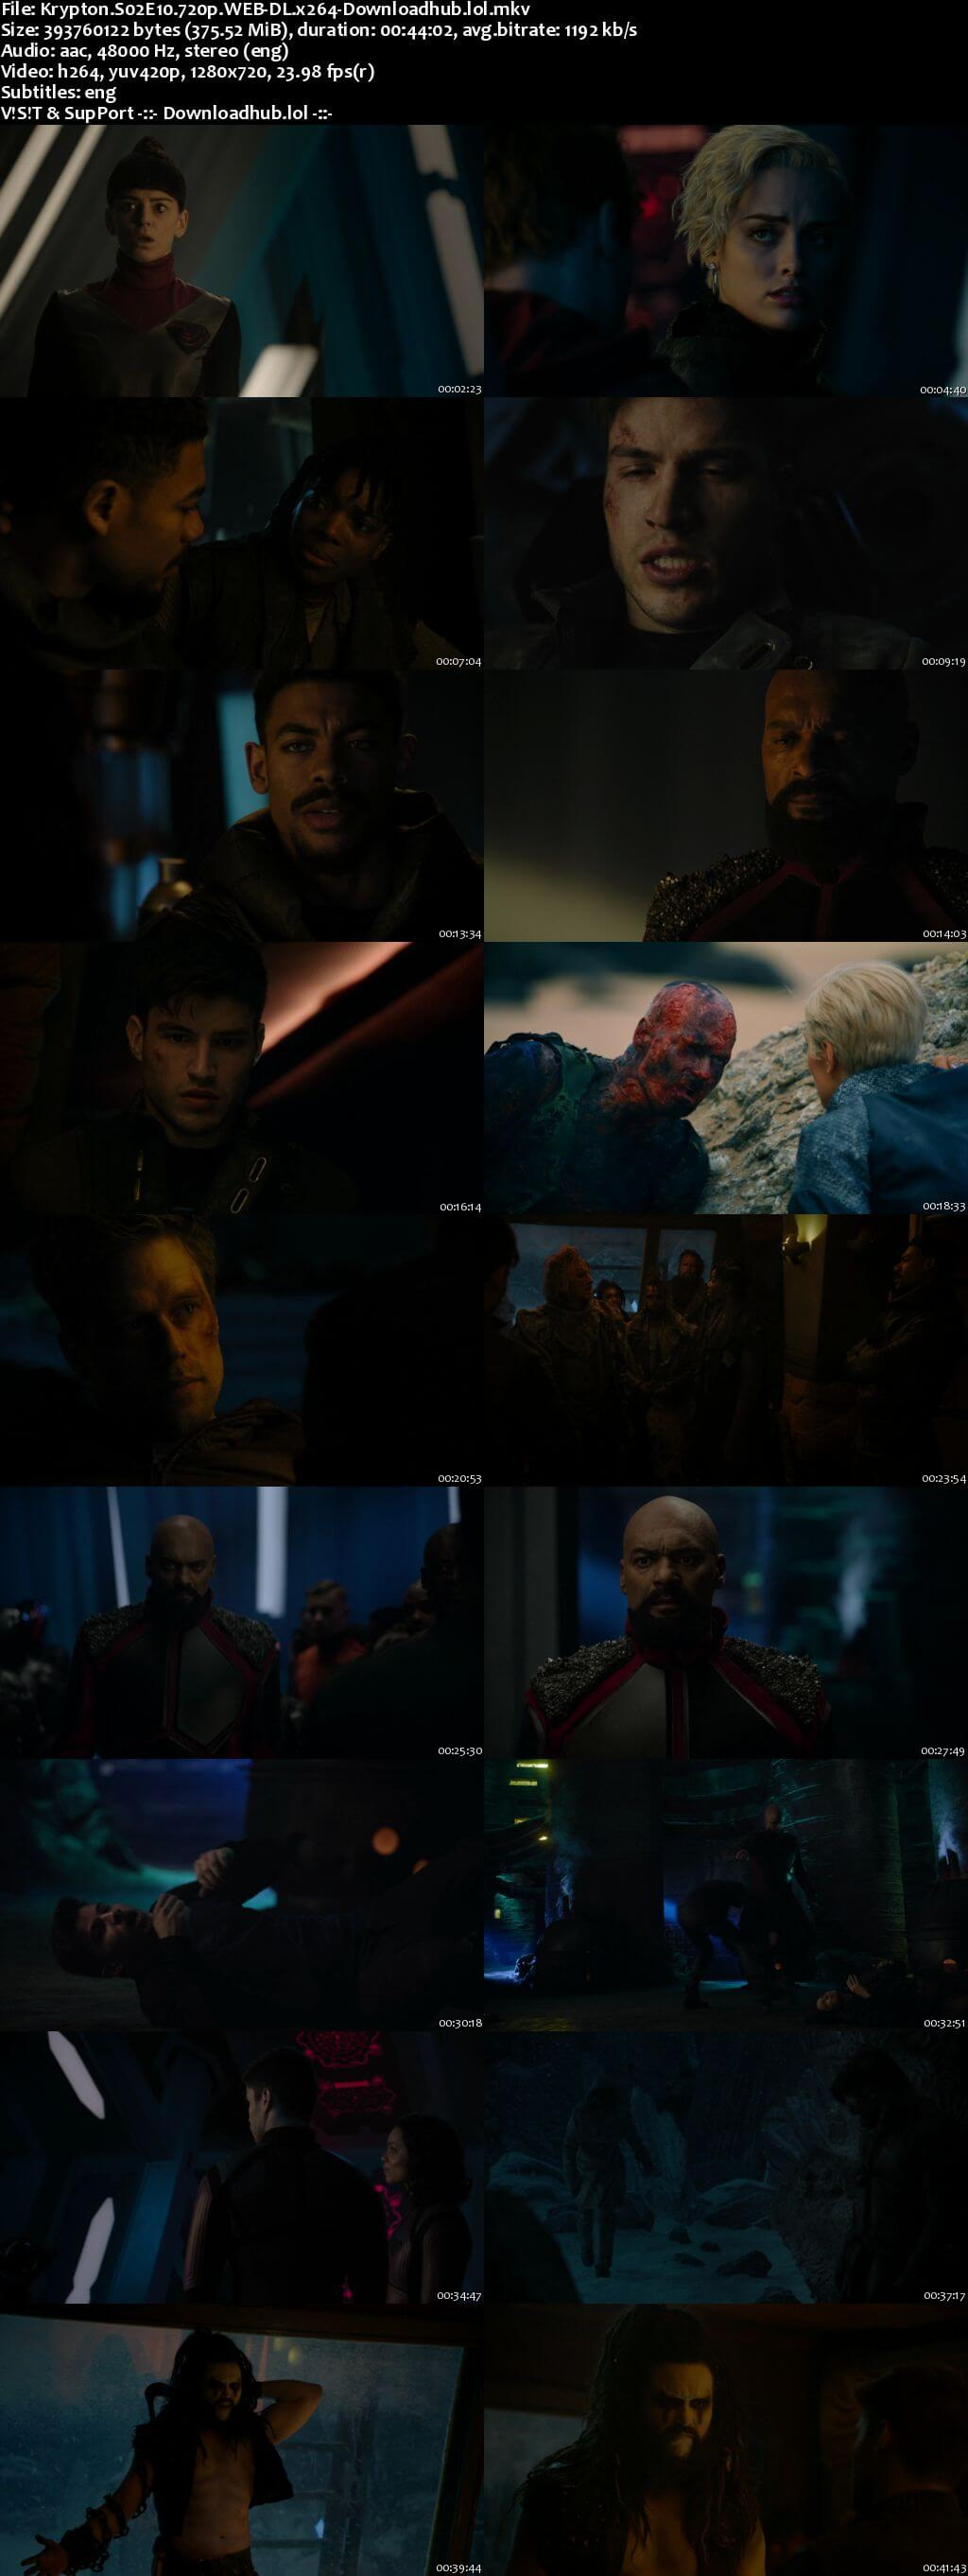 Krypton S02E10 350MB AMZN WEB-DL 720p ESubs